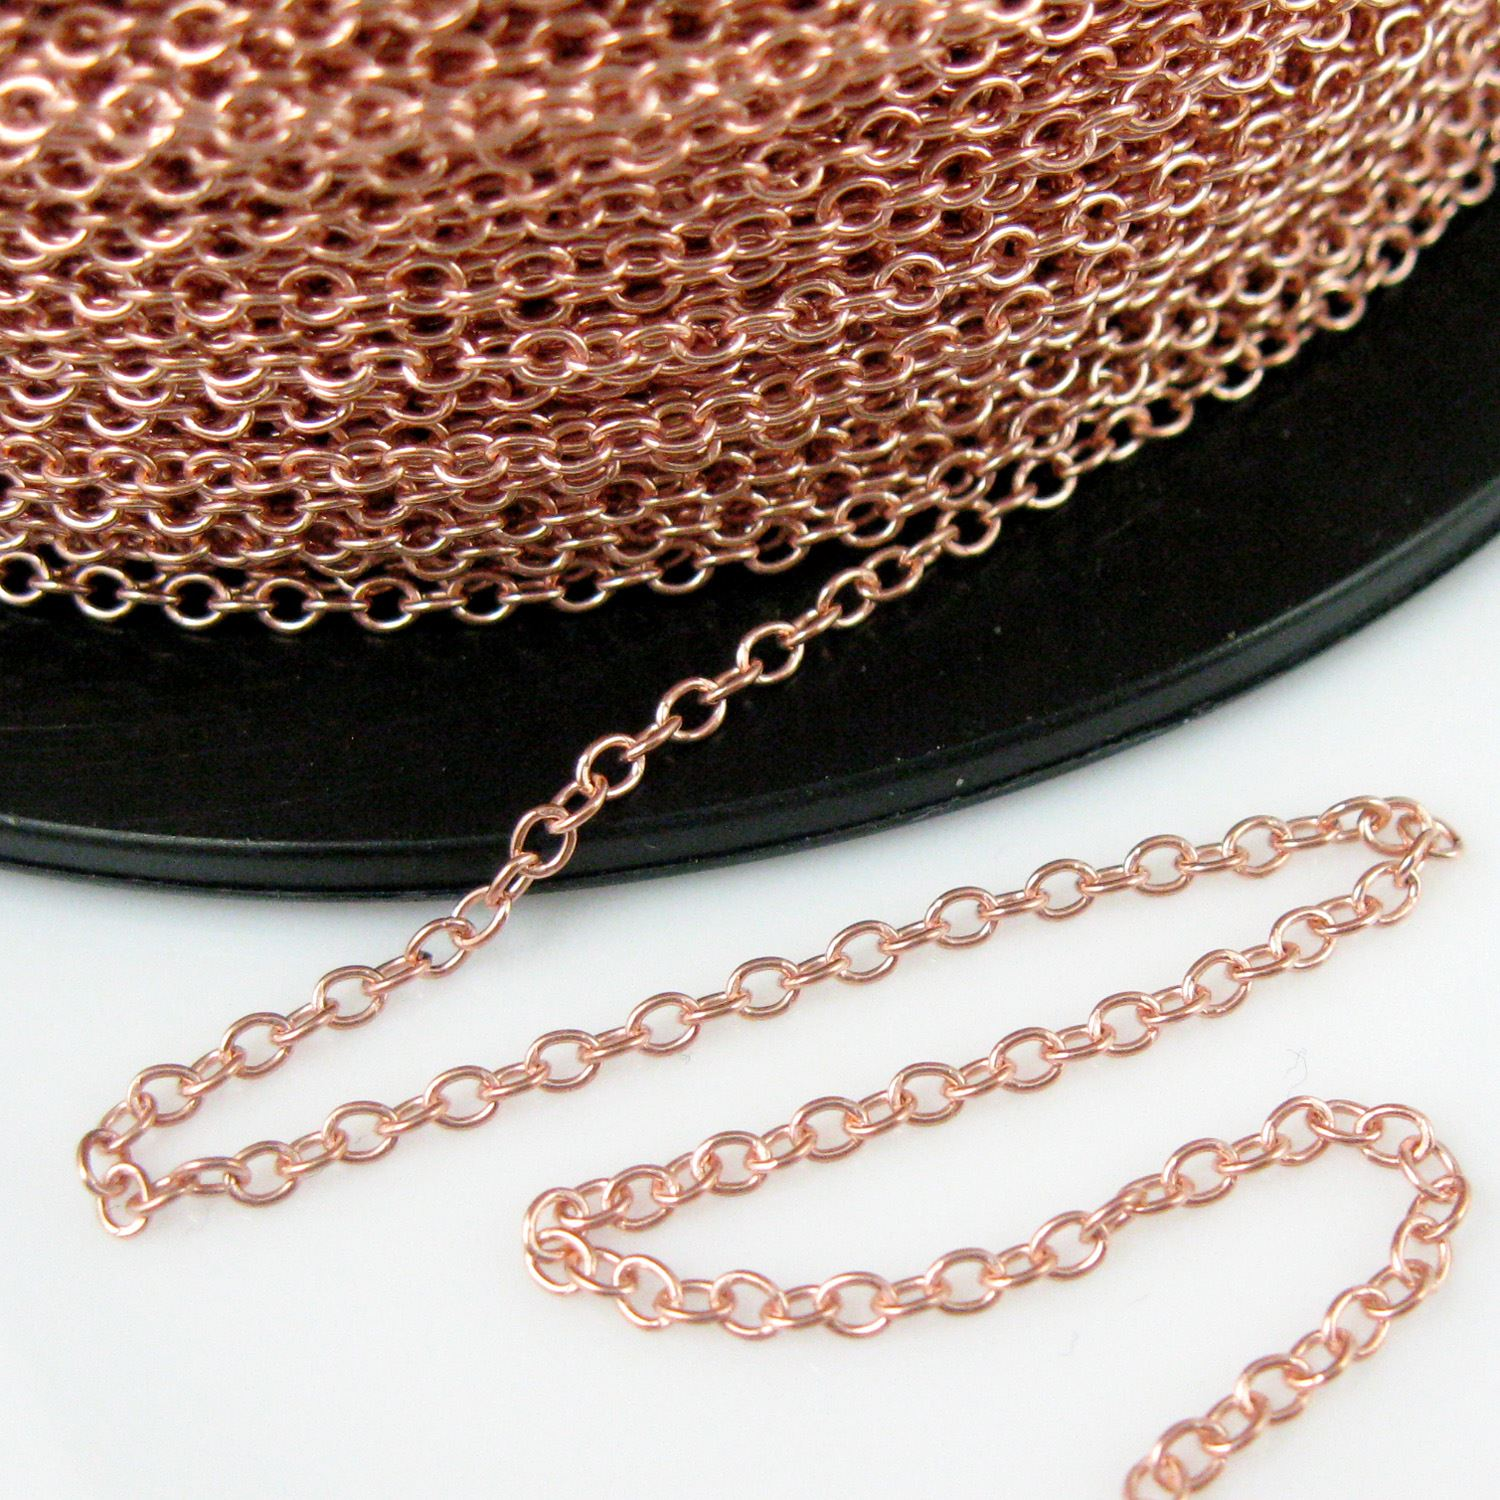 Rose Gold plated Sterling Silver Chain- Wholesale Bulk Chain - 2mm Strong Cable Oval Chain - Strong Chain - Unfinished Bulk Chain (sold per foot)